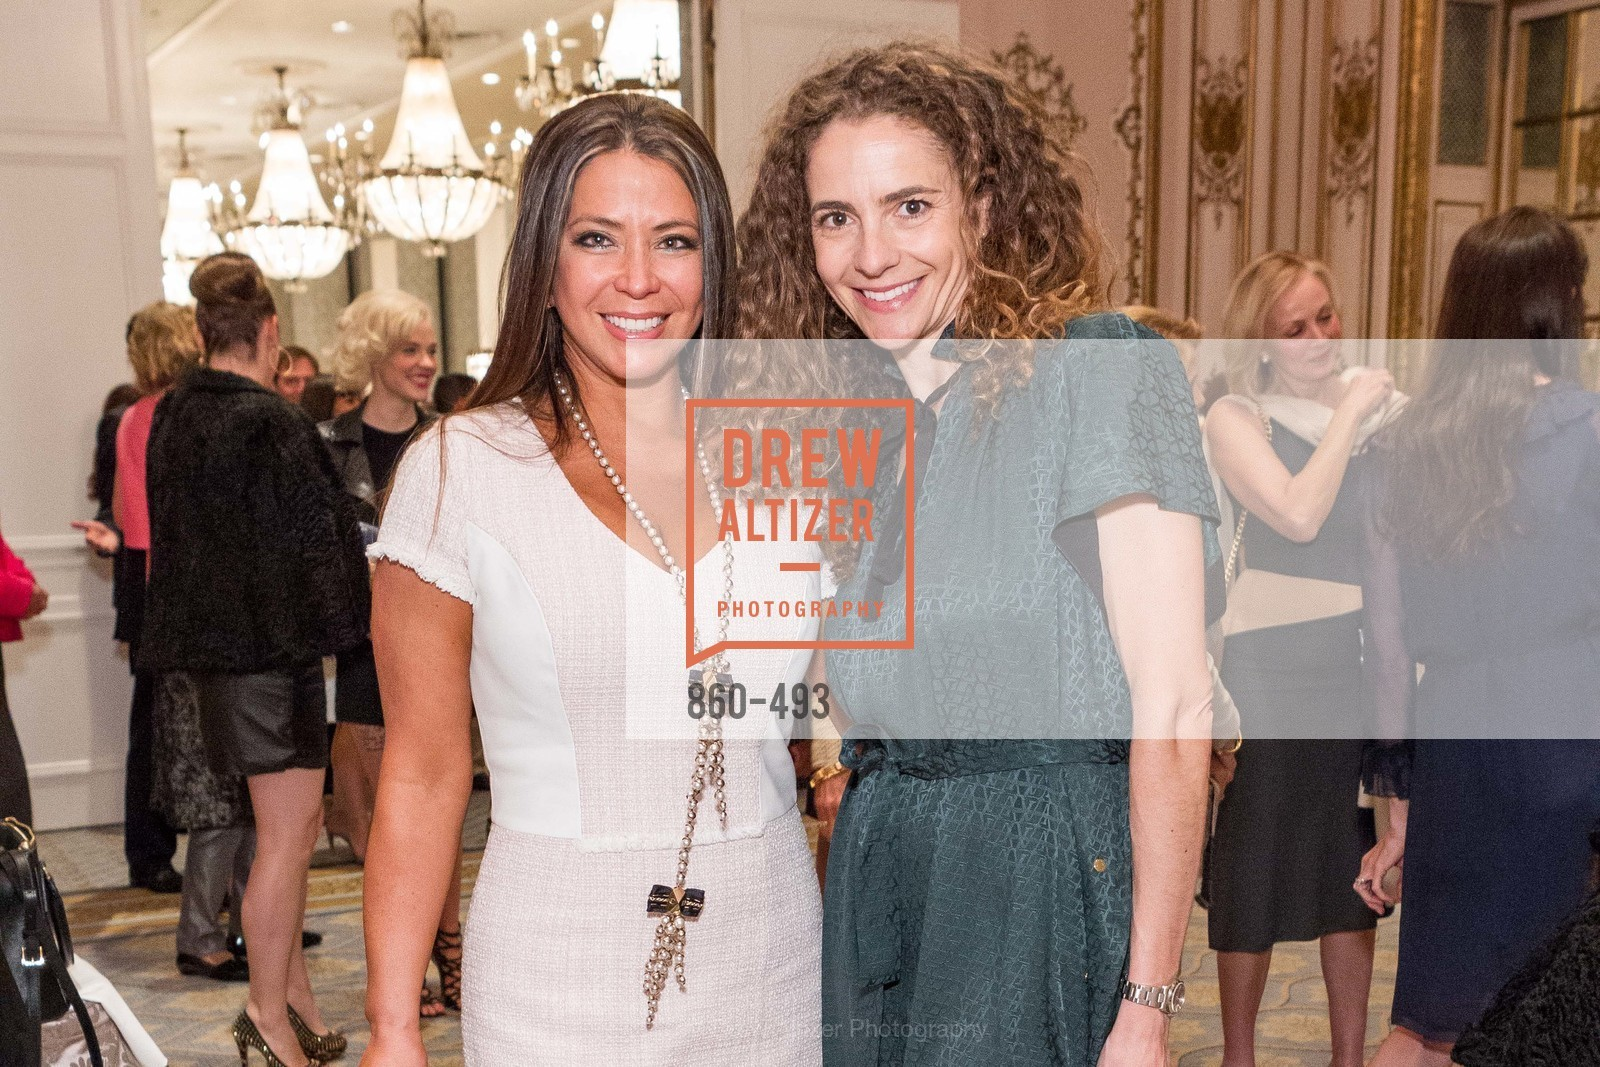 Maria Barrios, Monica Savini, SAN FRANCISCO BALLET AUXULIARY 2014 Fashion Show, US. The Fairmont, April 3rd, 2014,Drew Altizer, Drew Altizer Photography, full-service agency, private events, San Francisco photographer, photographer california